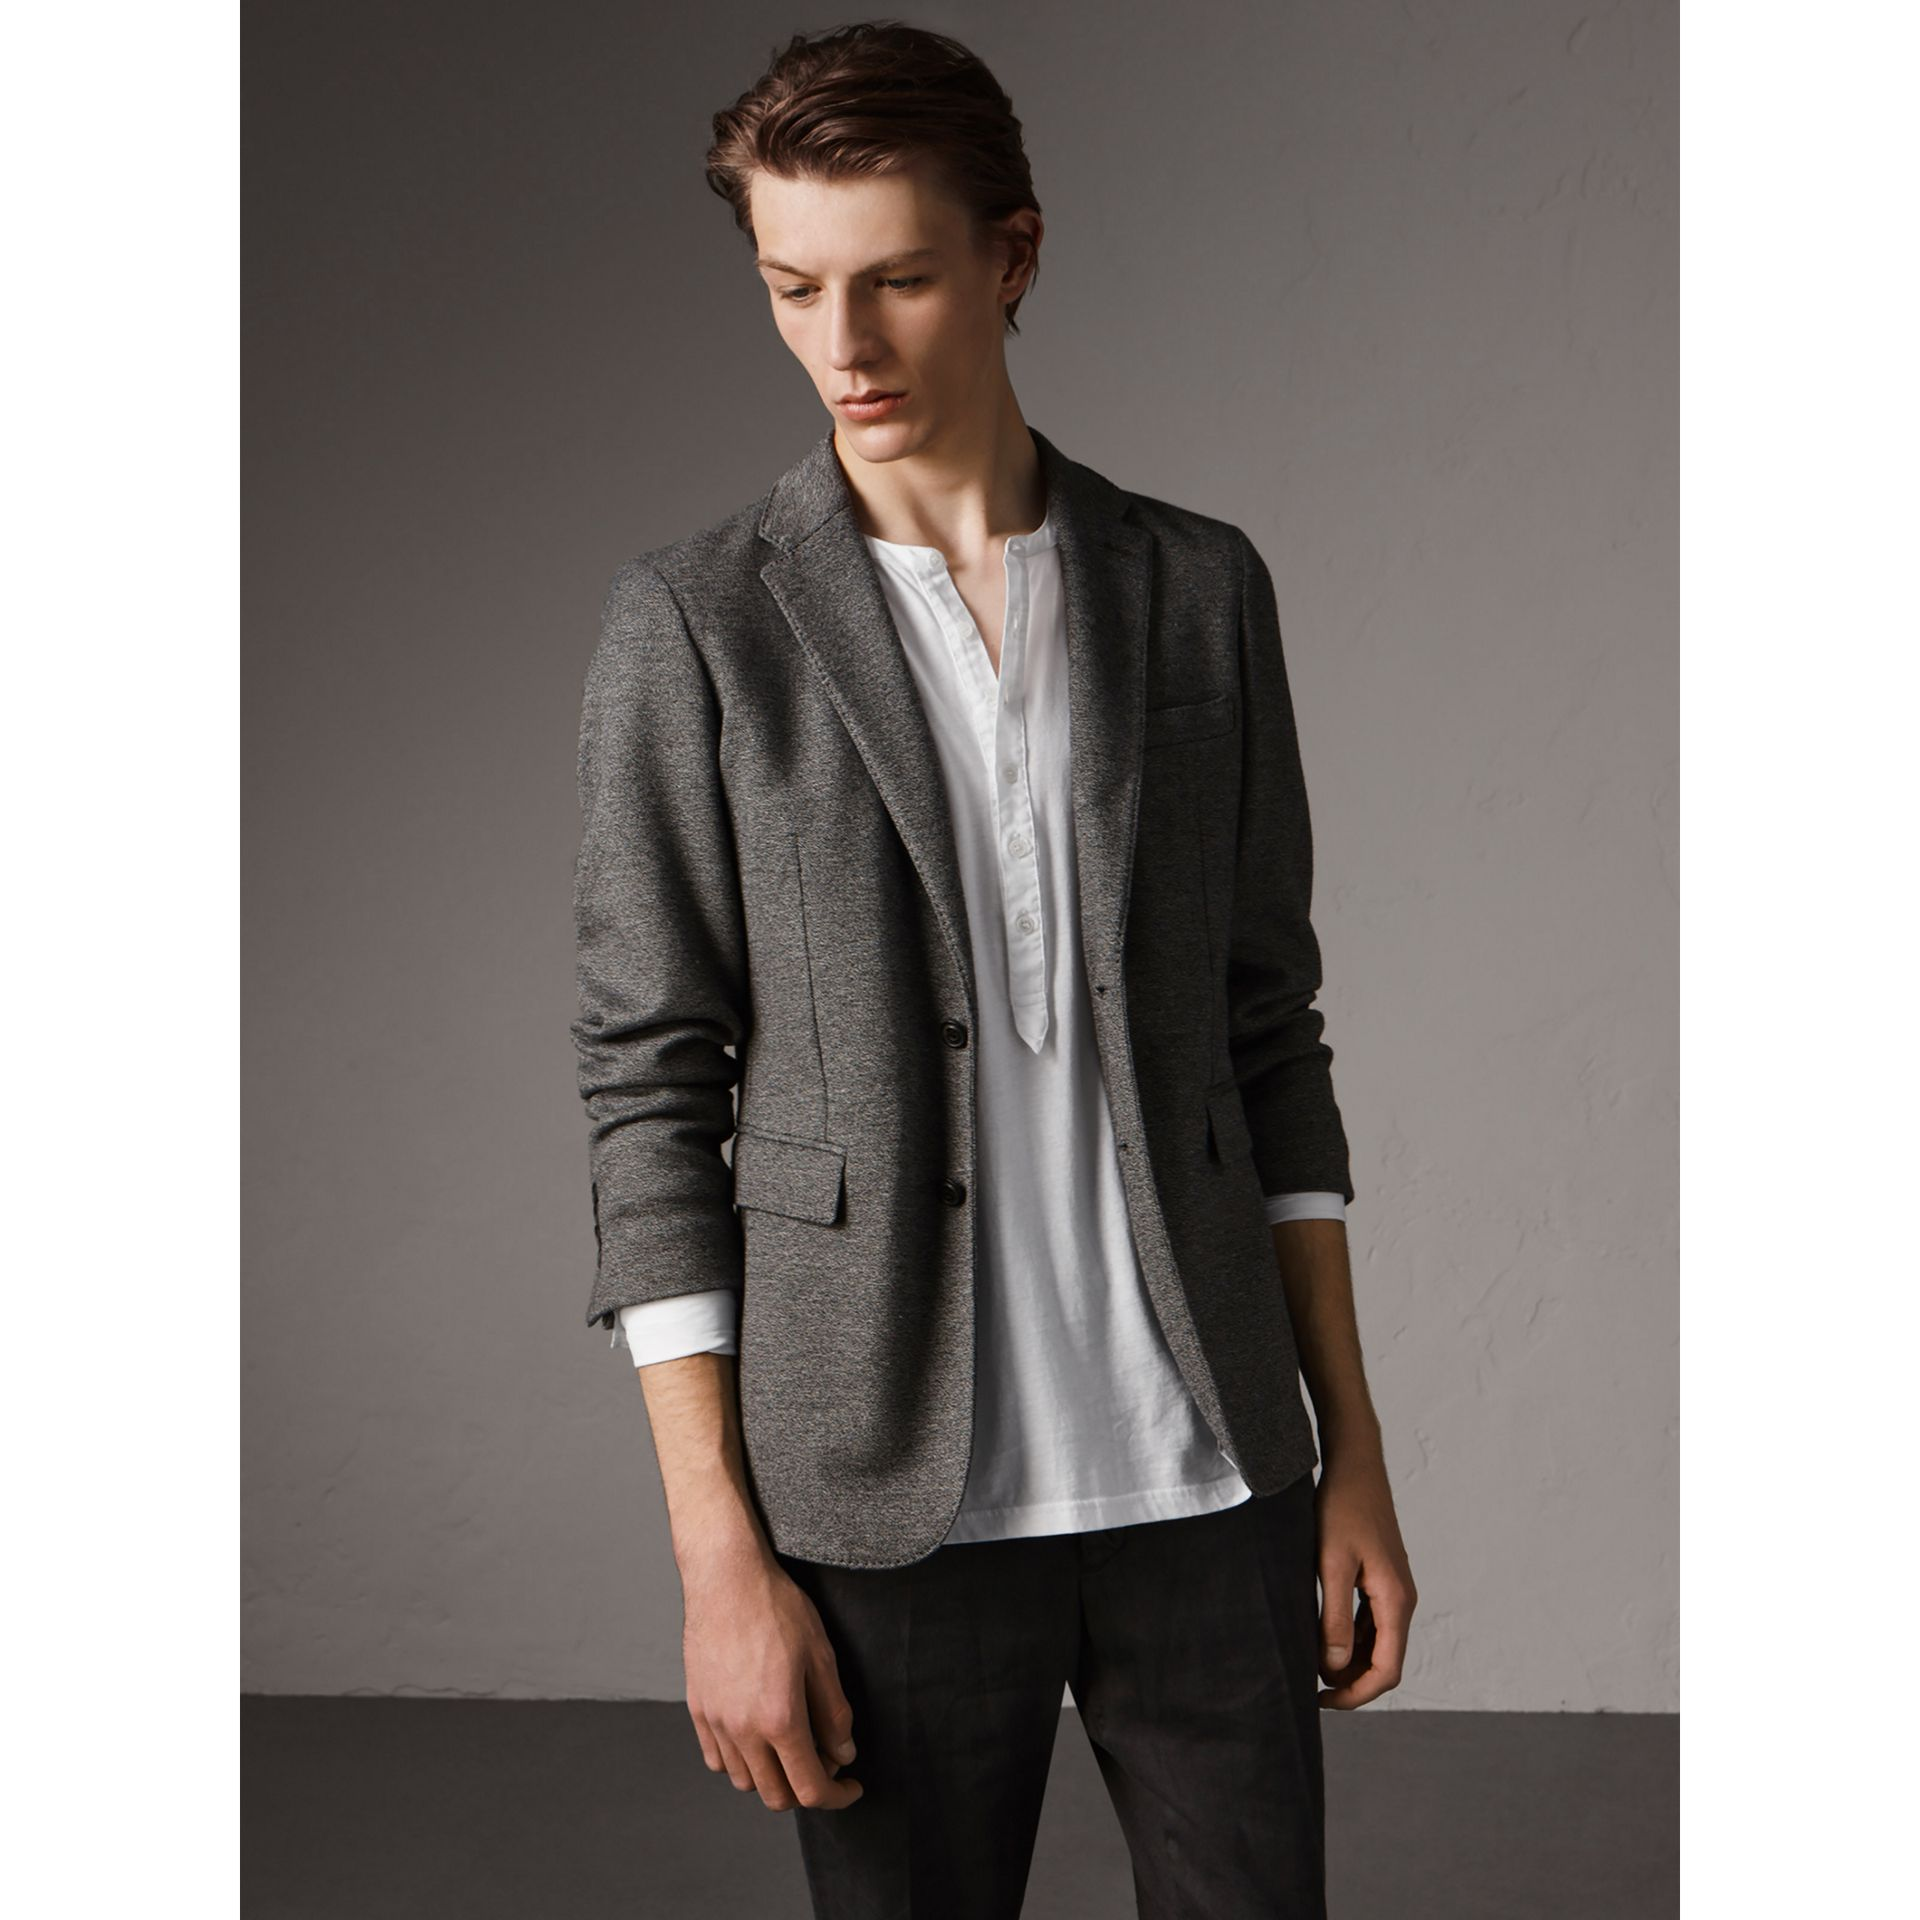 Soho Fit Cotton Wool Jersey Tailored Jacket in Charcoal Melange - Men | Burberry - gallery image 5